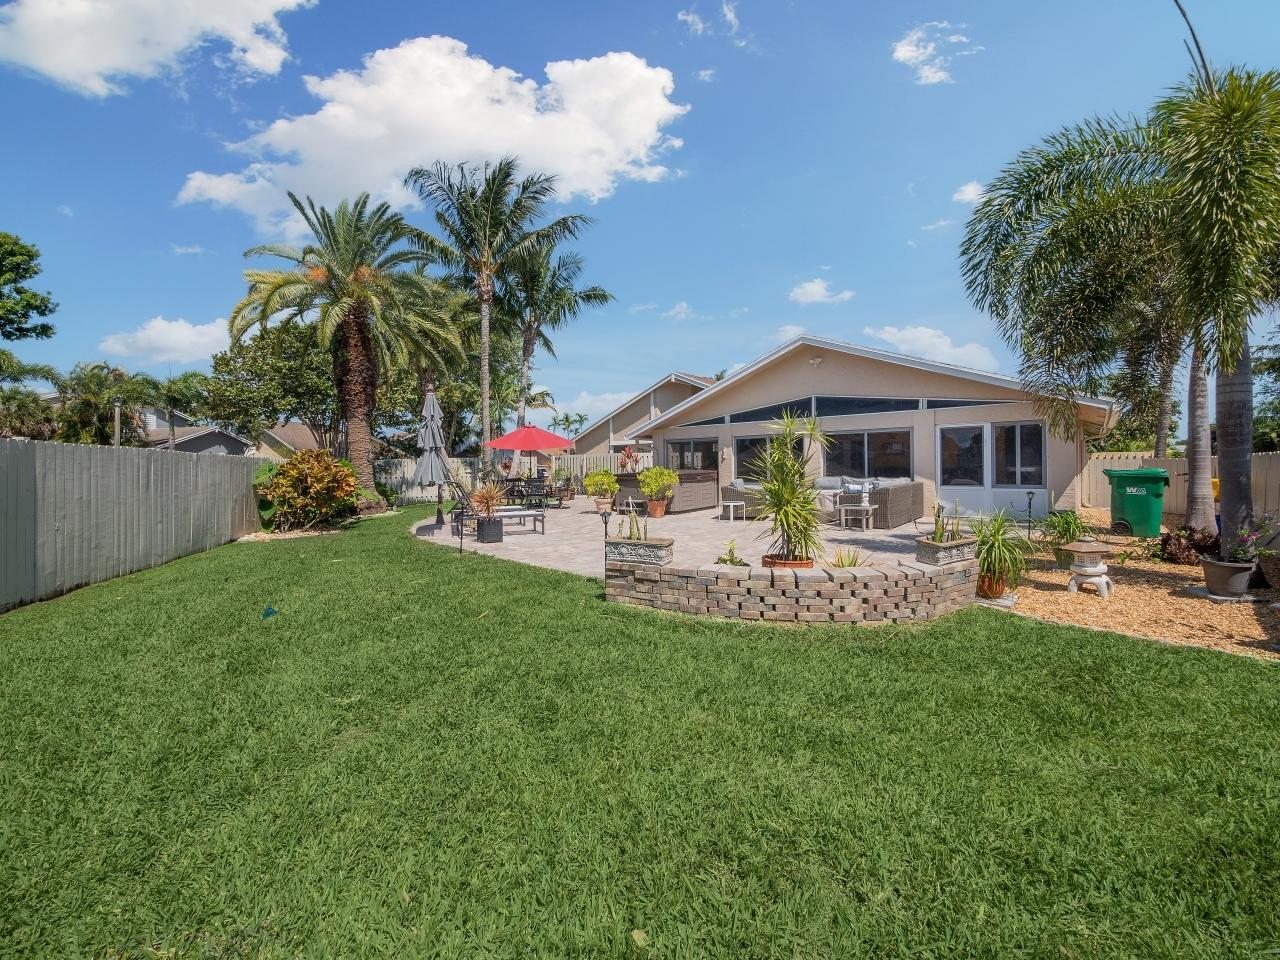 1985 NW 10th Street  For Sale 10708237, FL